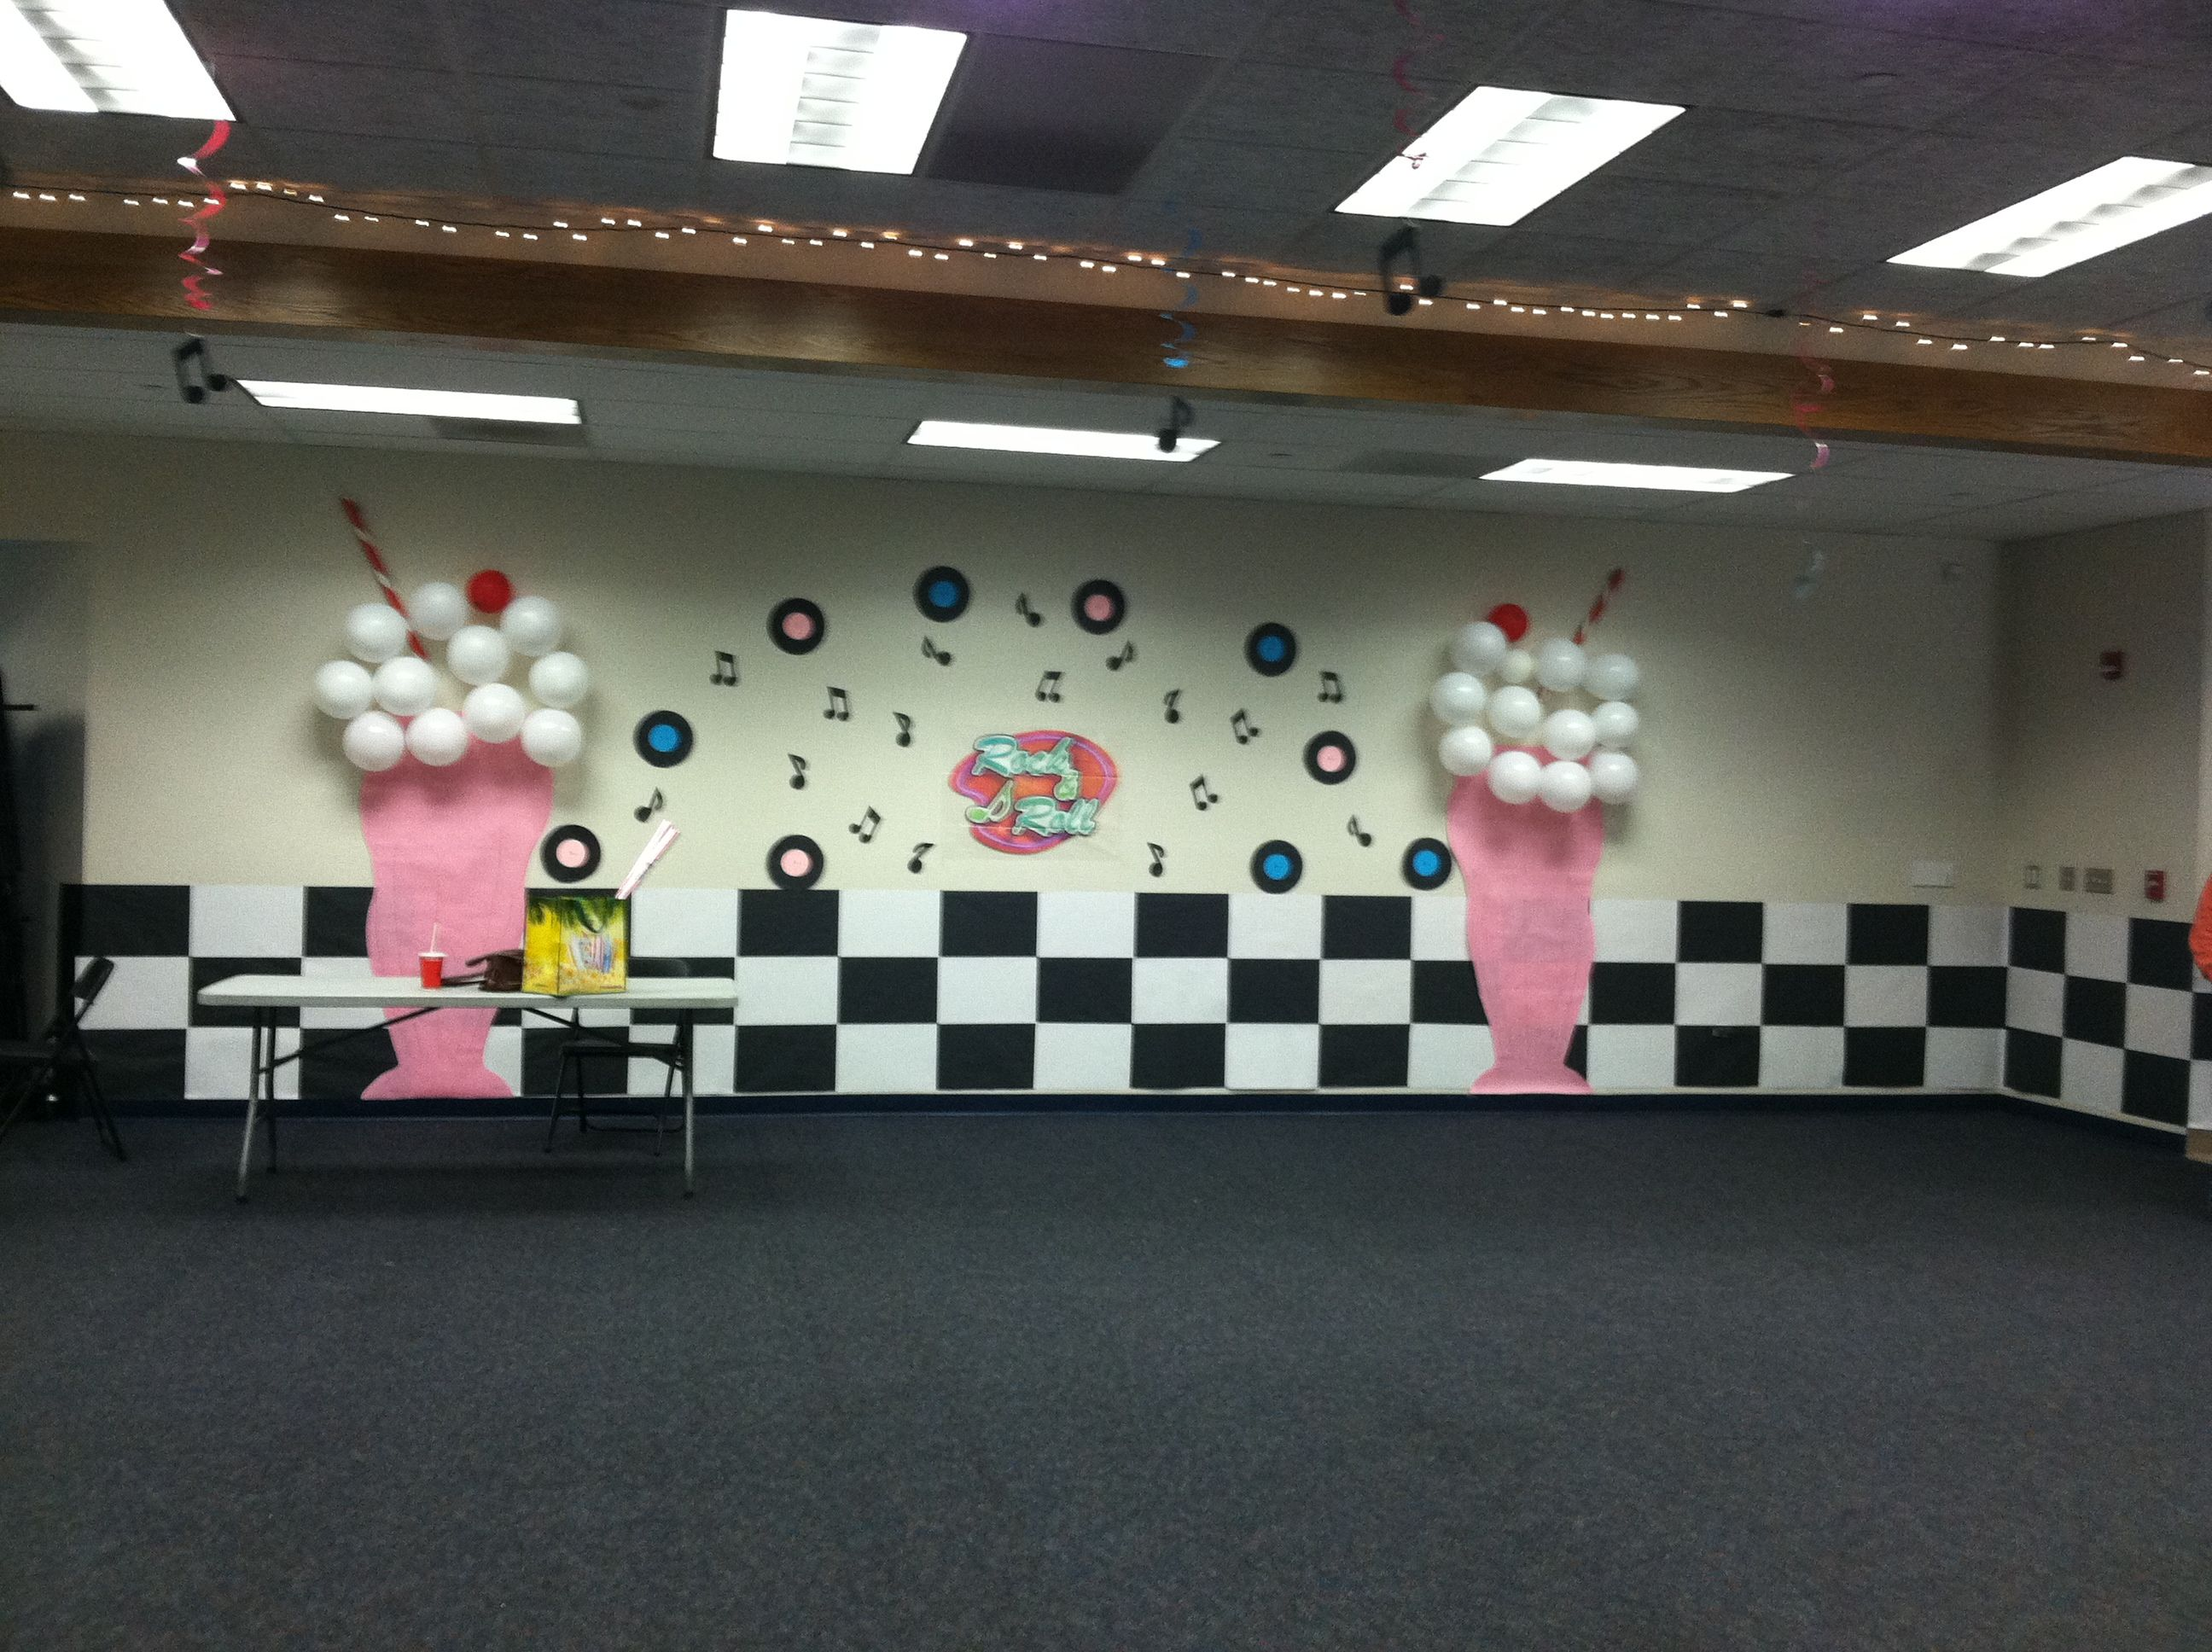 Sock Hop Decorations, Paper Milkshakes For Sock Hop Dance .